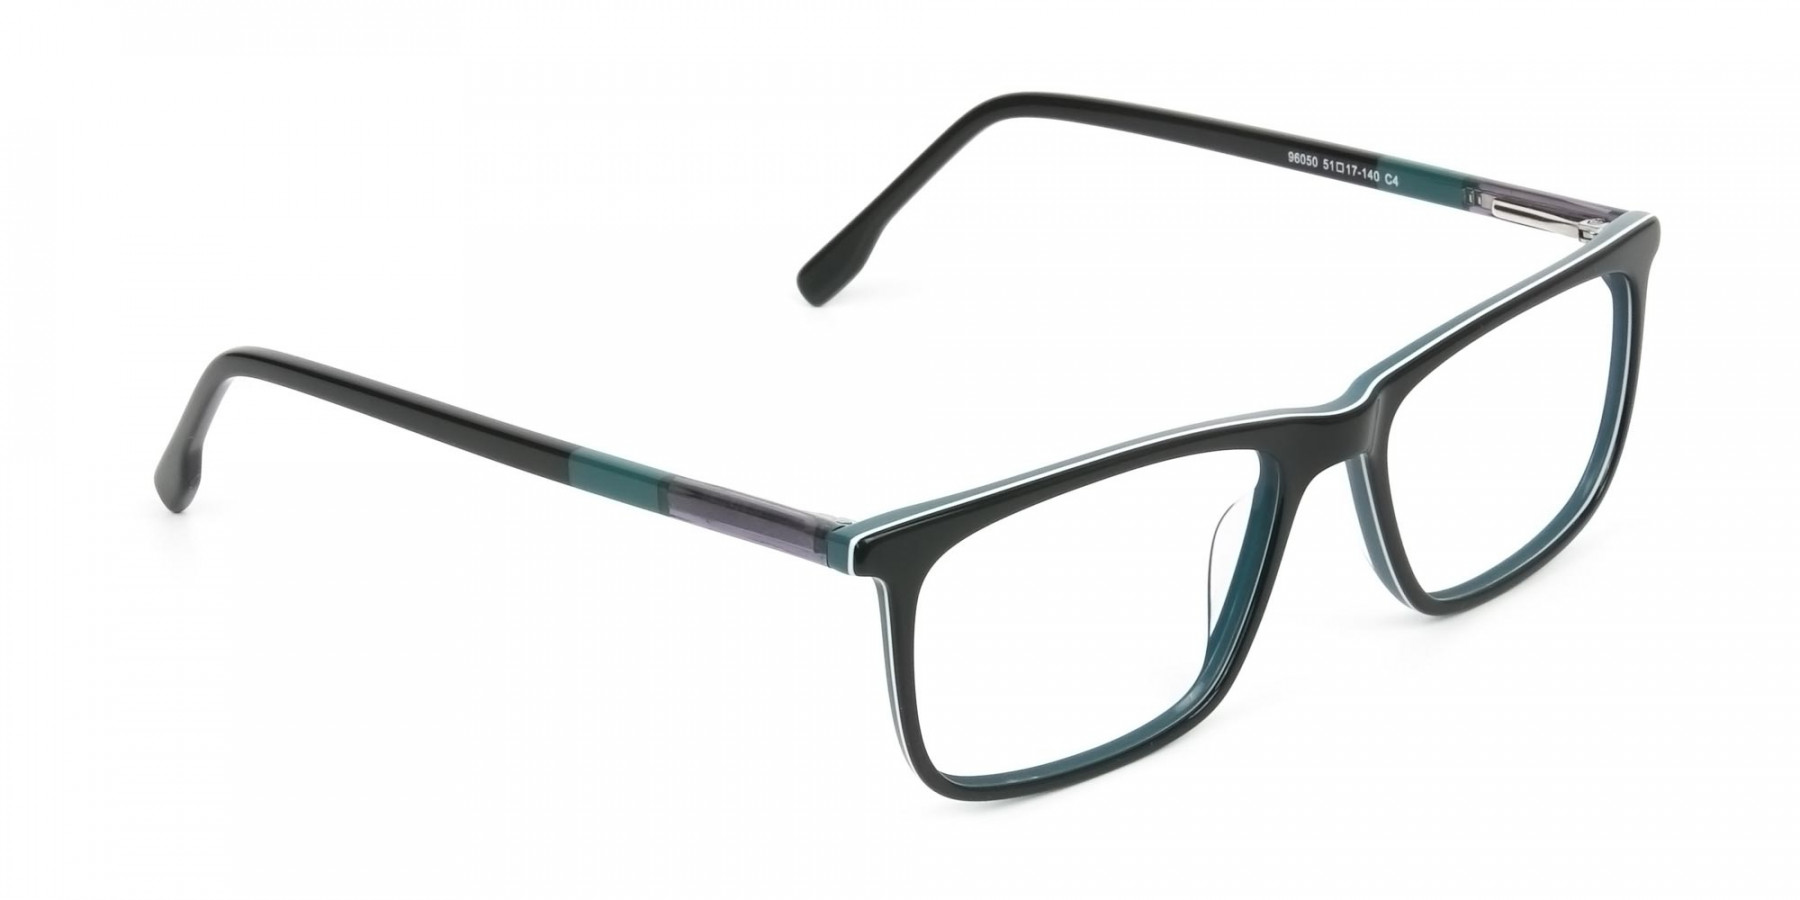 Black and Teal Spectacles in Rectangular - 1